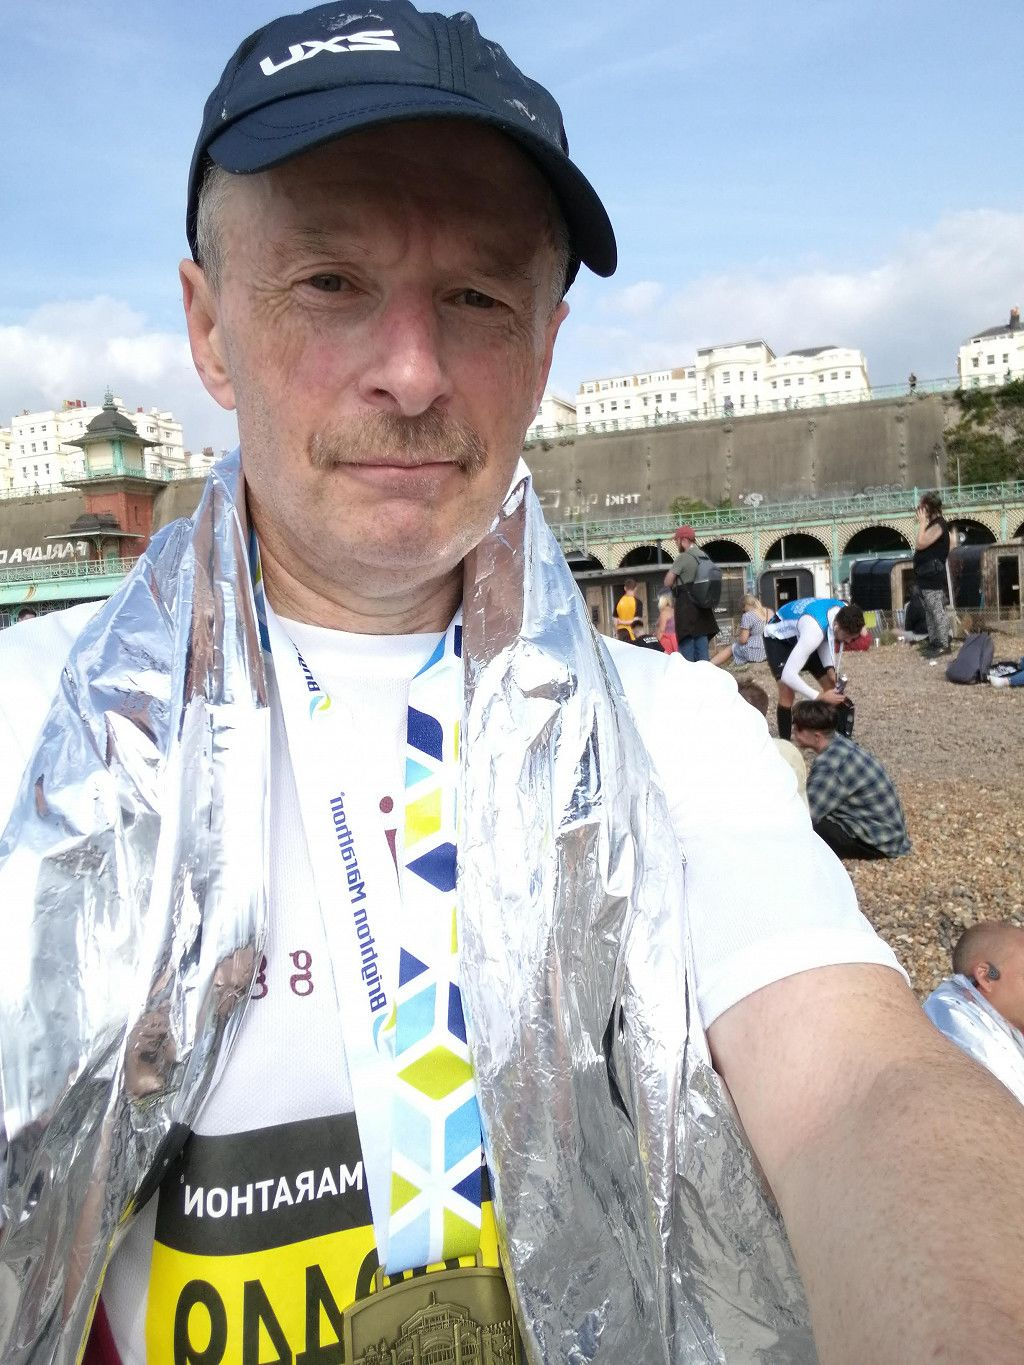 Me with medal after the finish. Looking a lot better than I felt at the time!